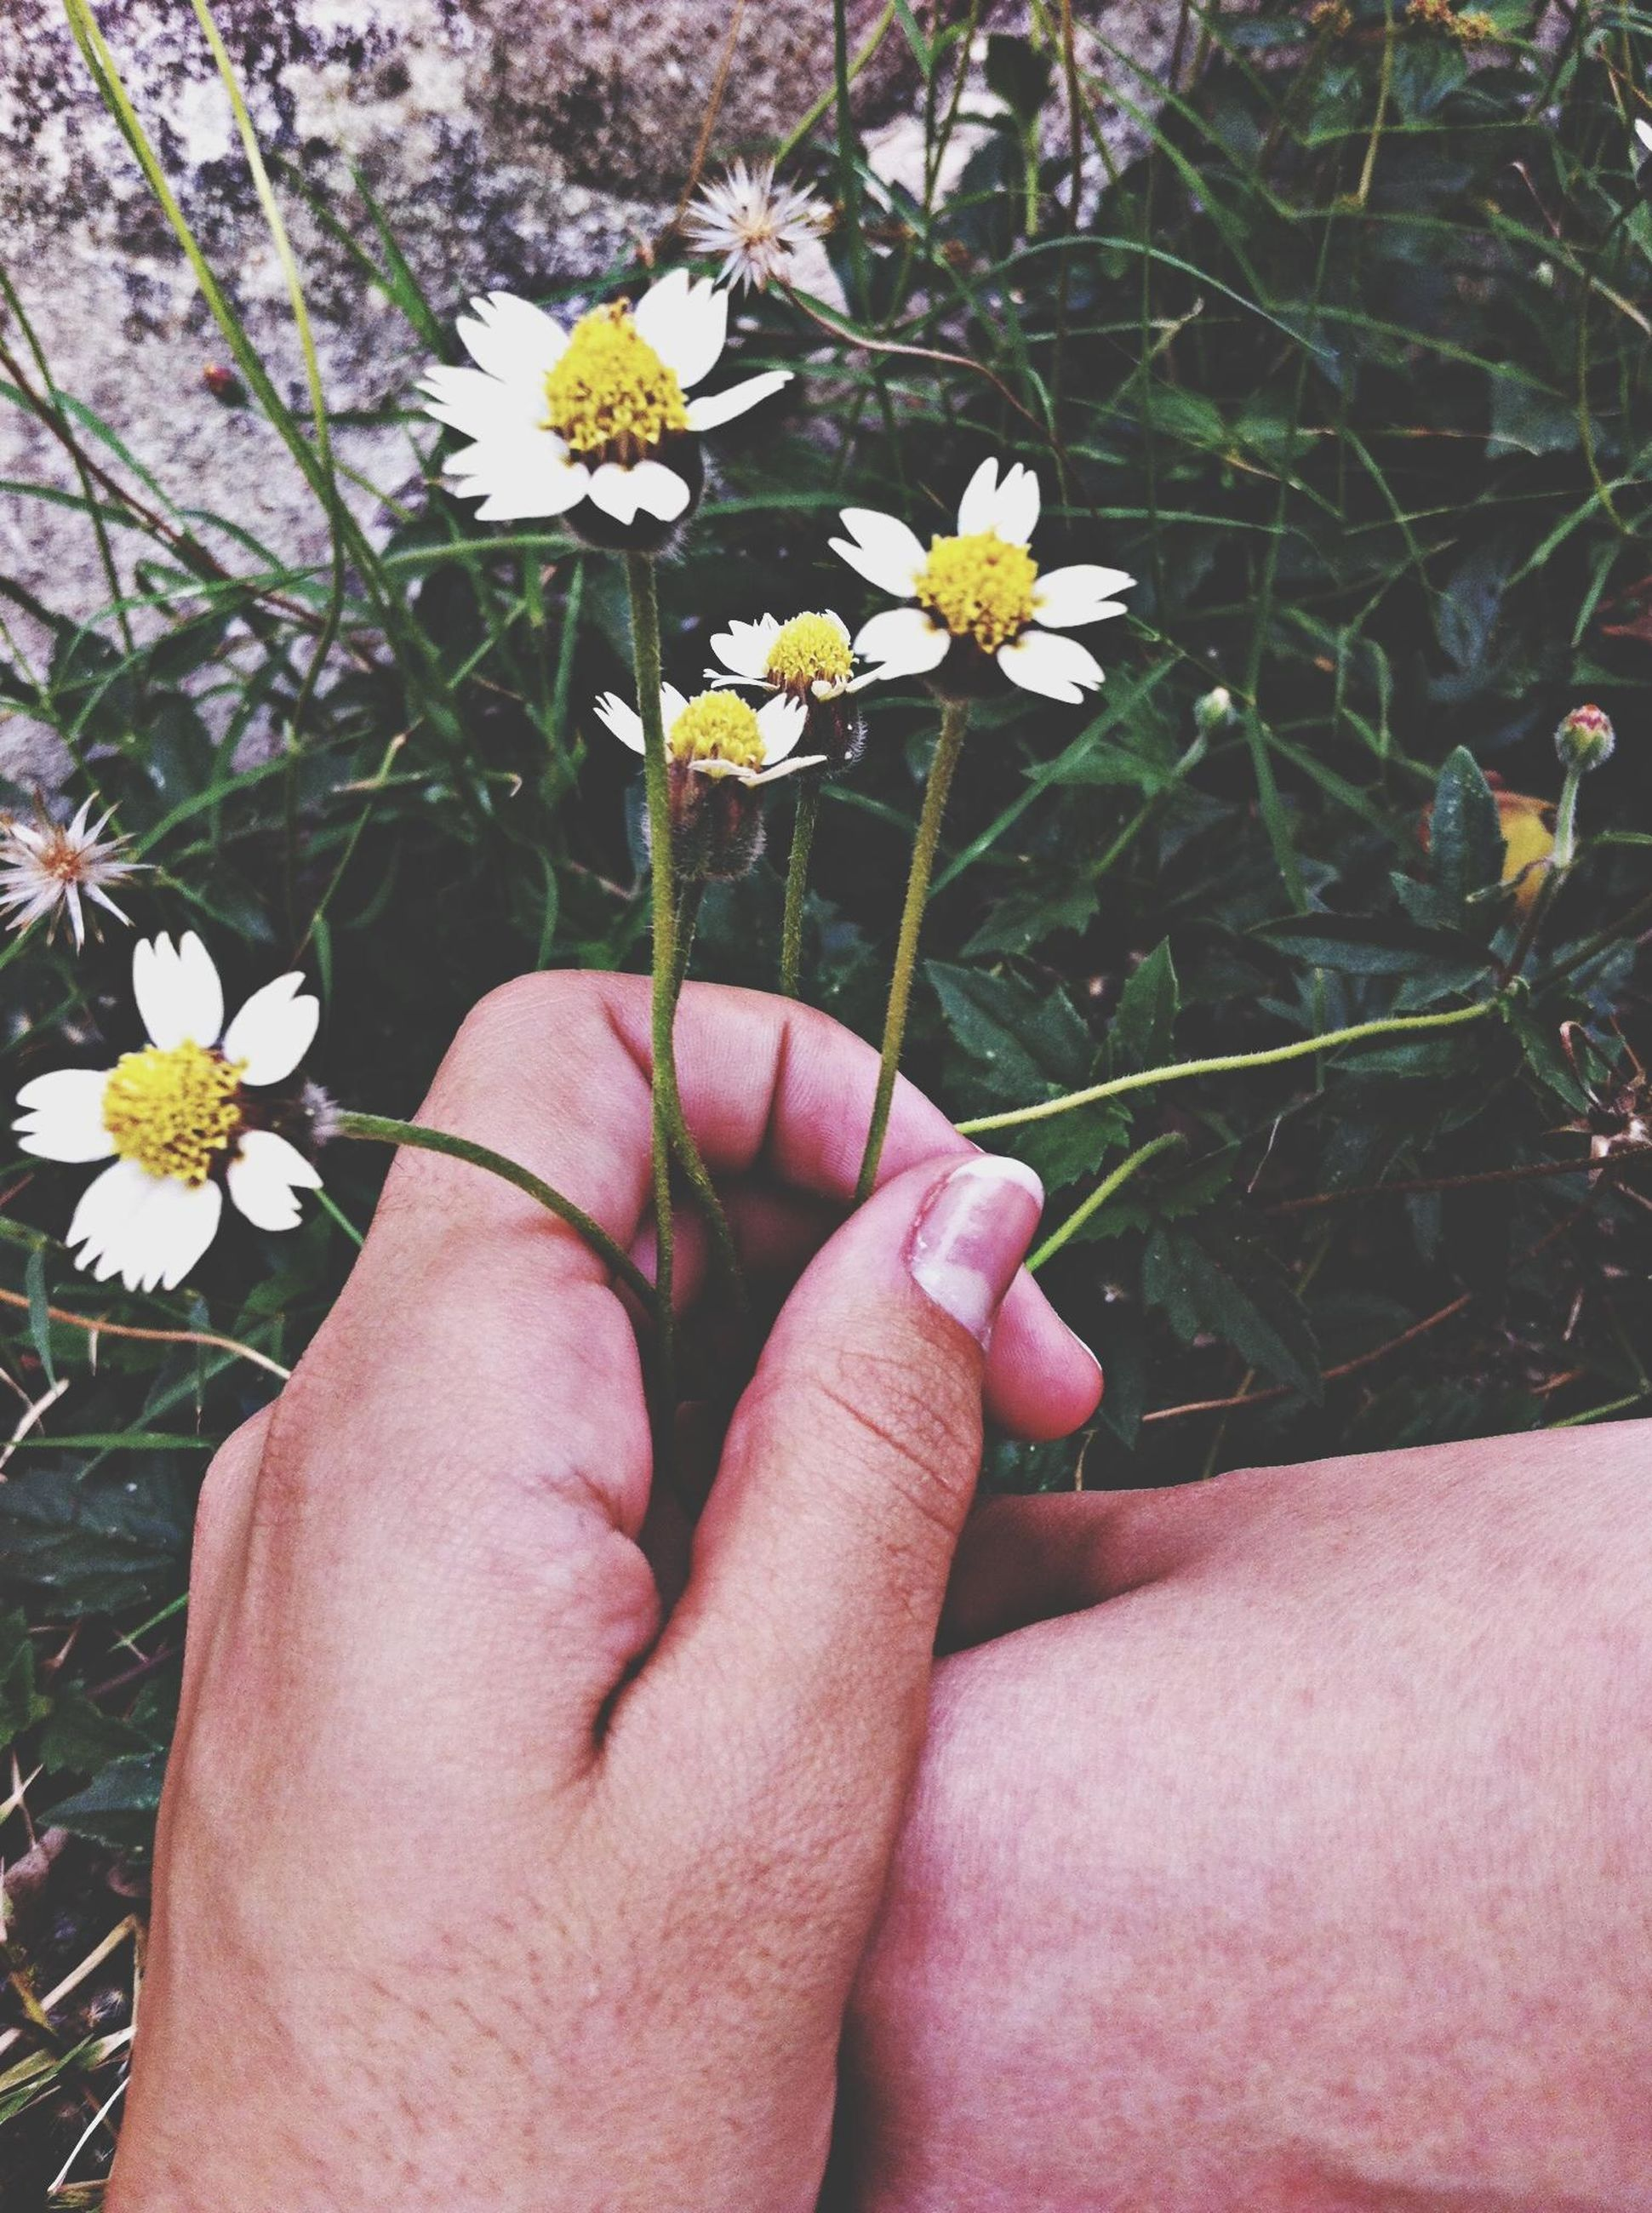 flower, person, fragility, freshness, holding, petal, flower head, part of, daisy, human finger, cropped, white color, beauty in nature, lifestyles, nature, growth